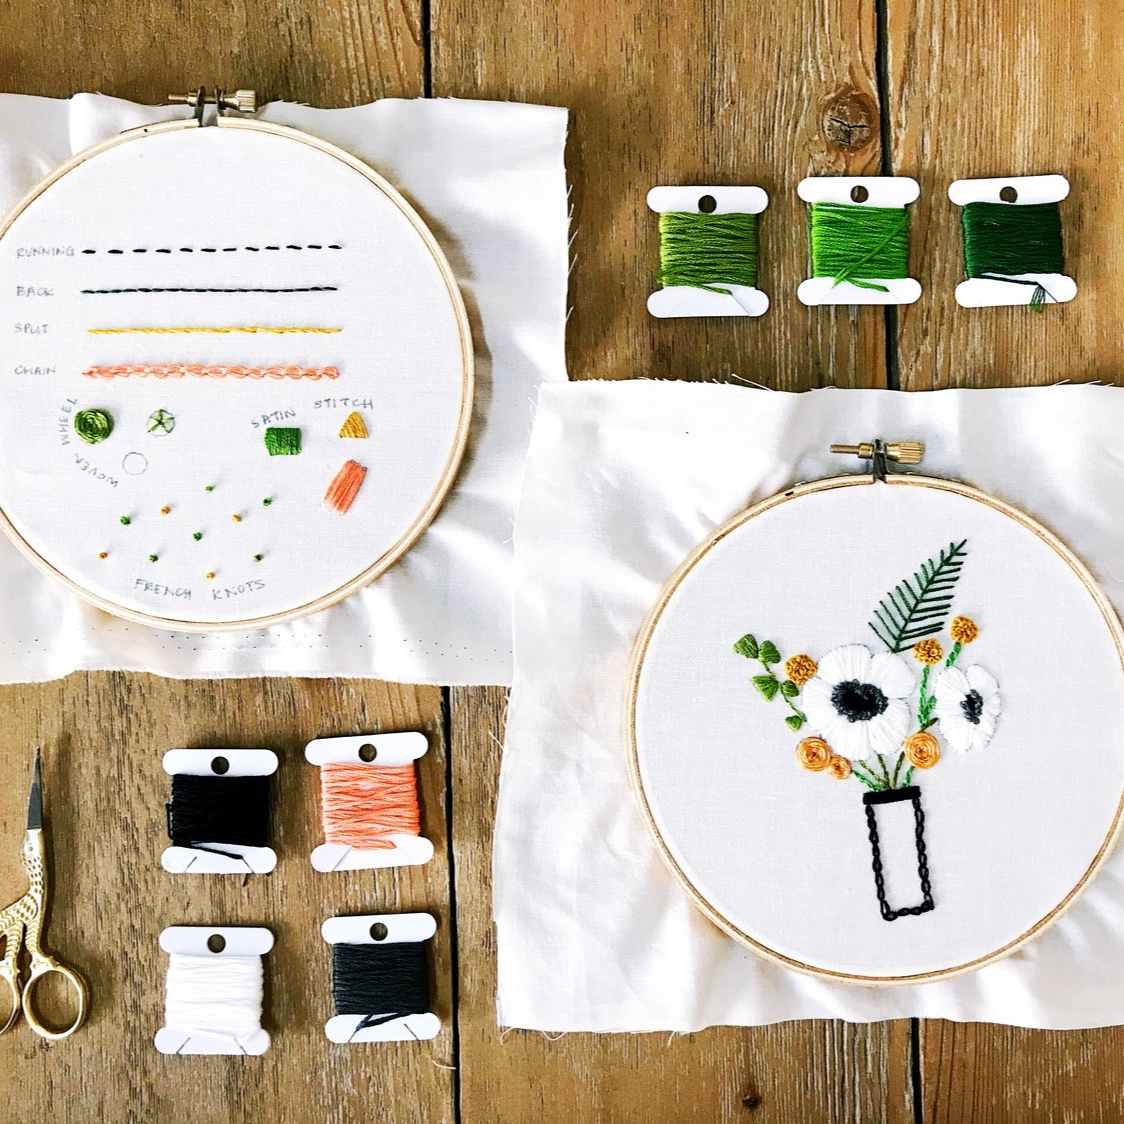 papercraftpantry-workshops-intro-to-hand-embroidery.jpg